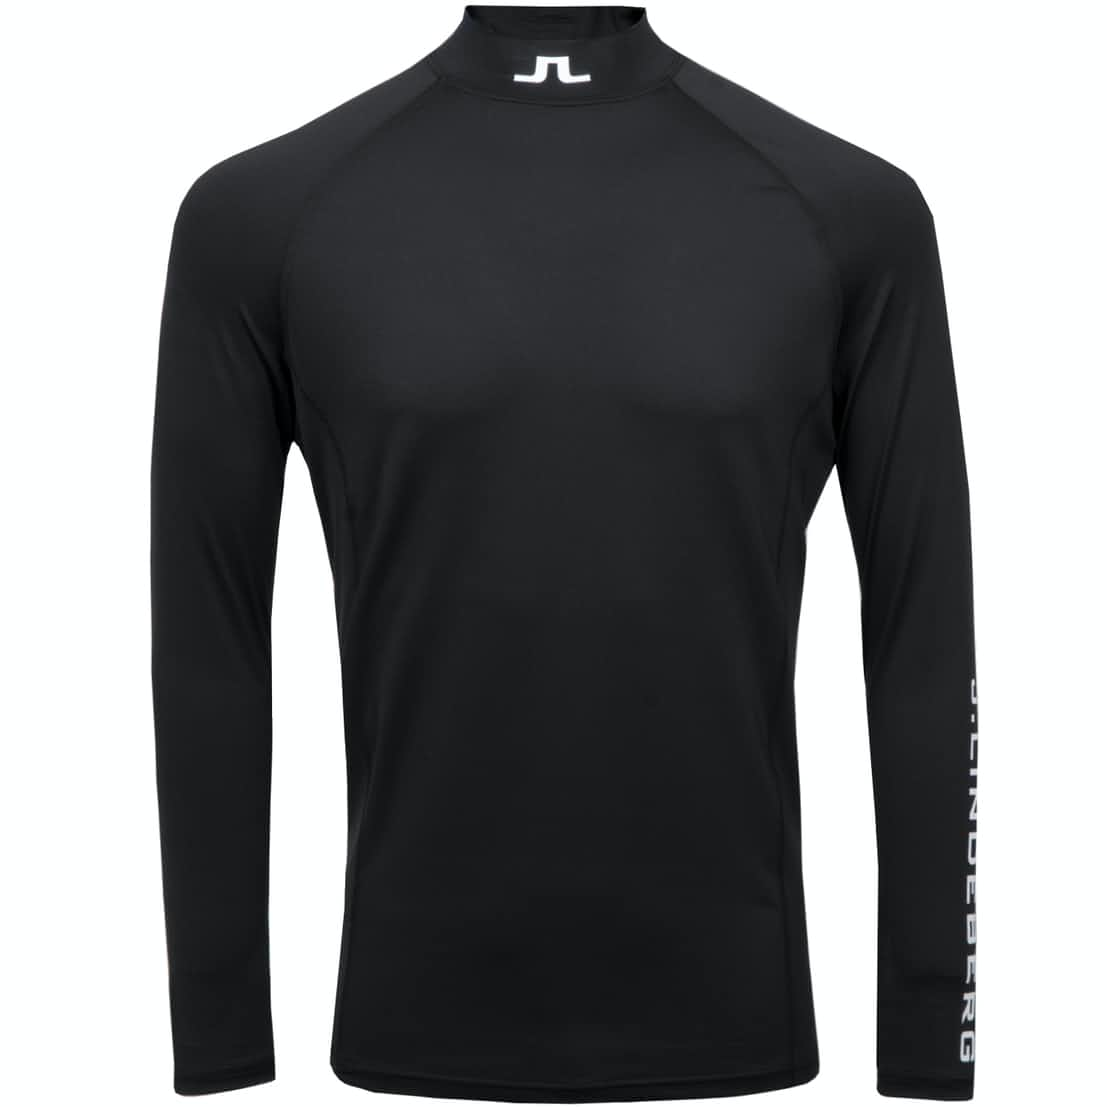 Aello Slim Soft Compression Black - 2020